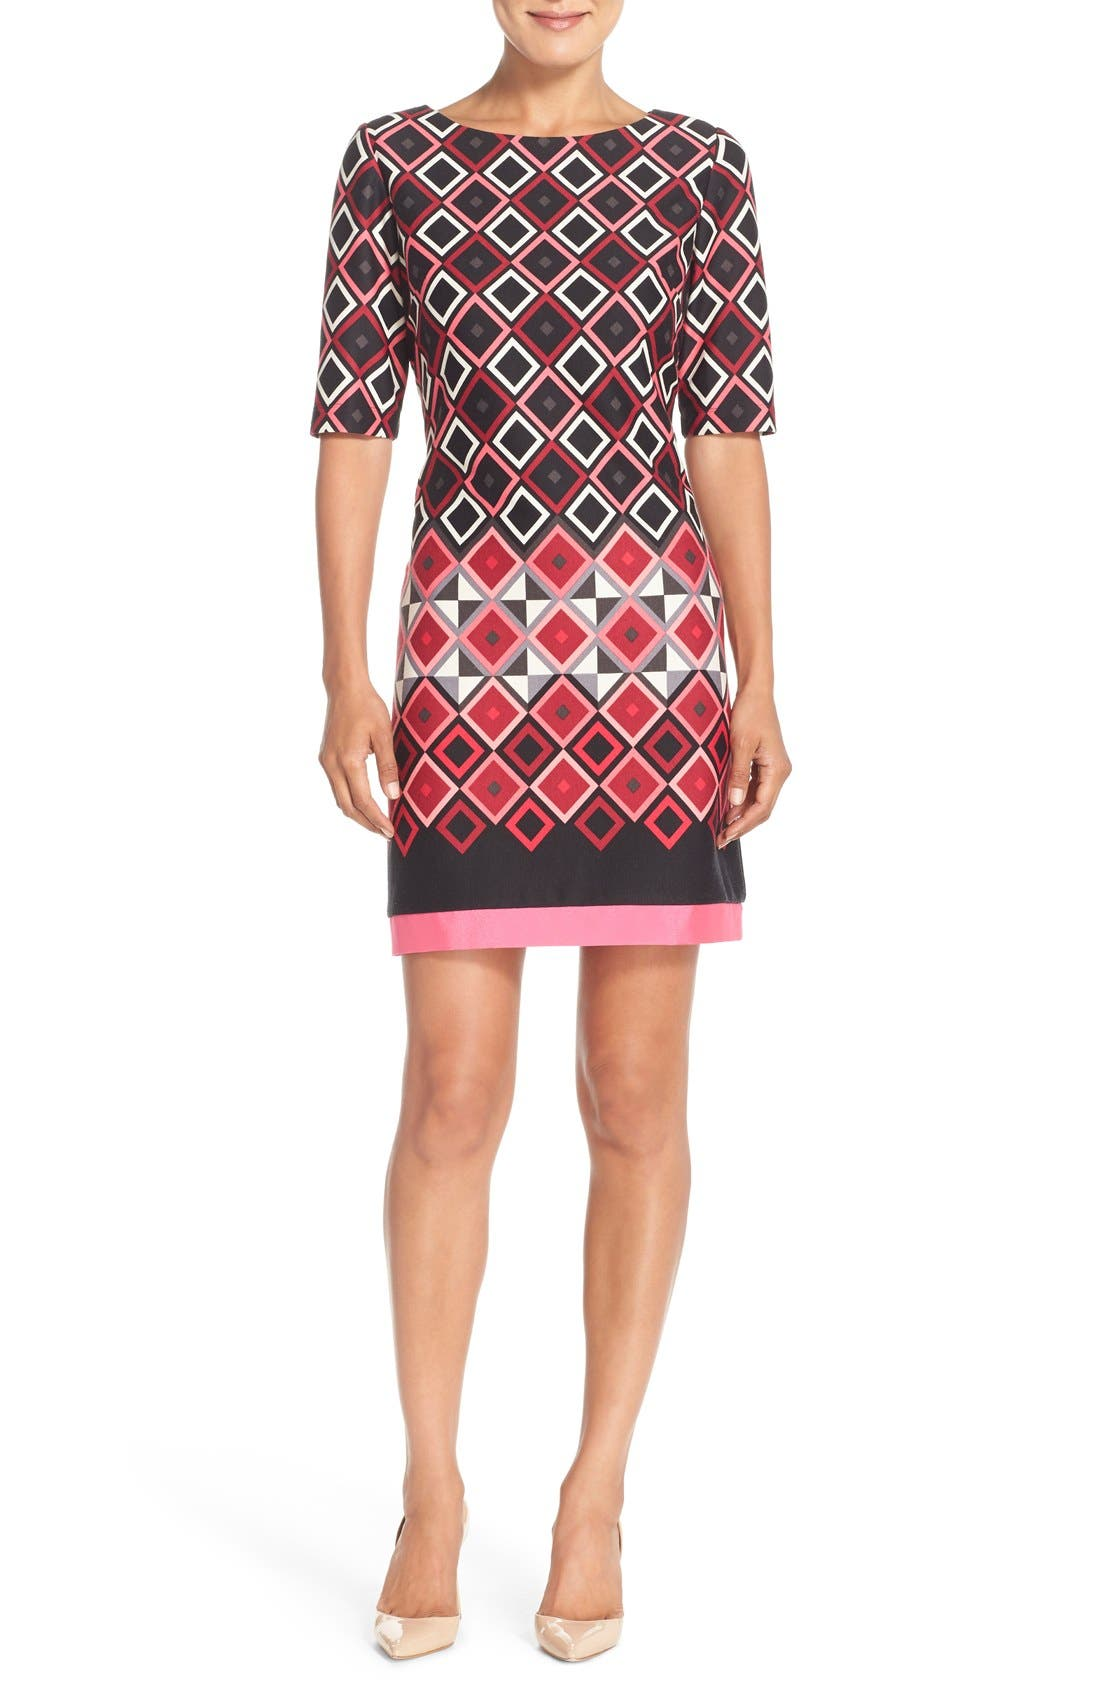 Alternate Image 1 Selected - Eliza J Print Ponte Shift Dress (Regular & Petite)